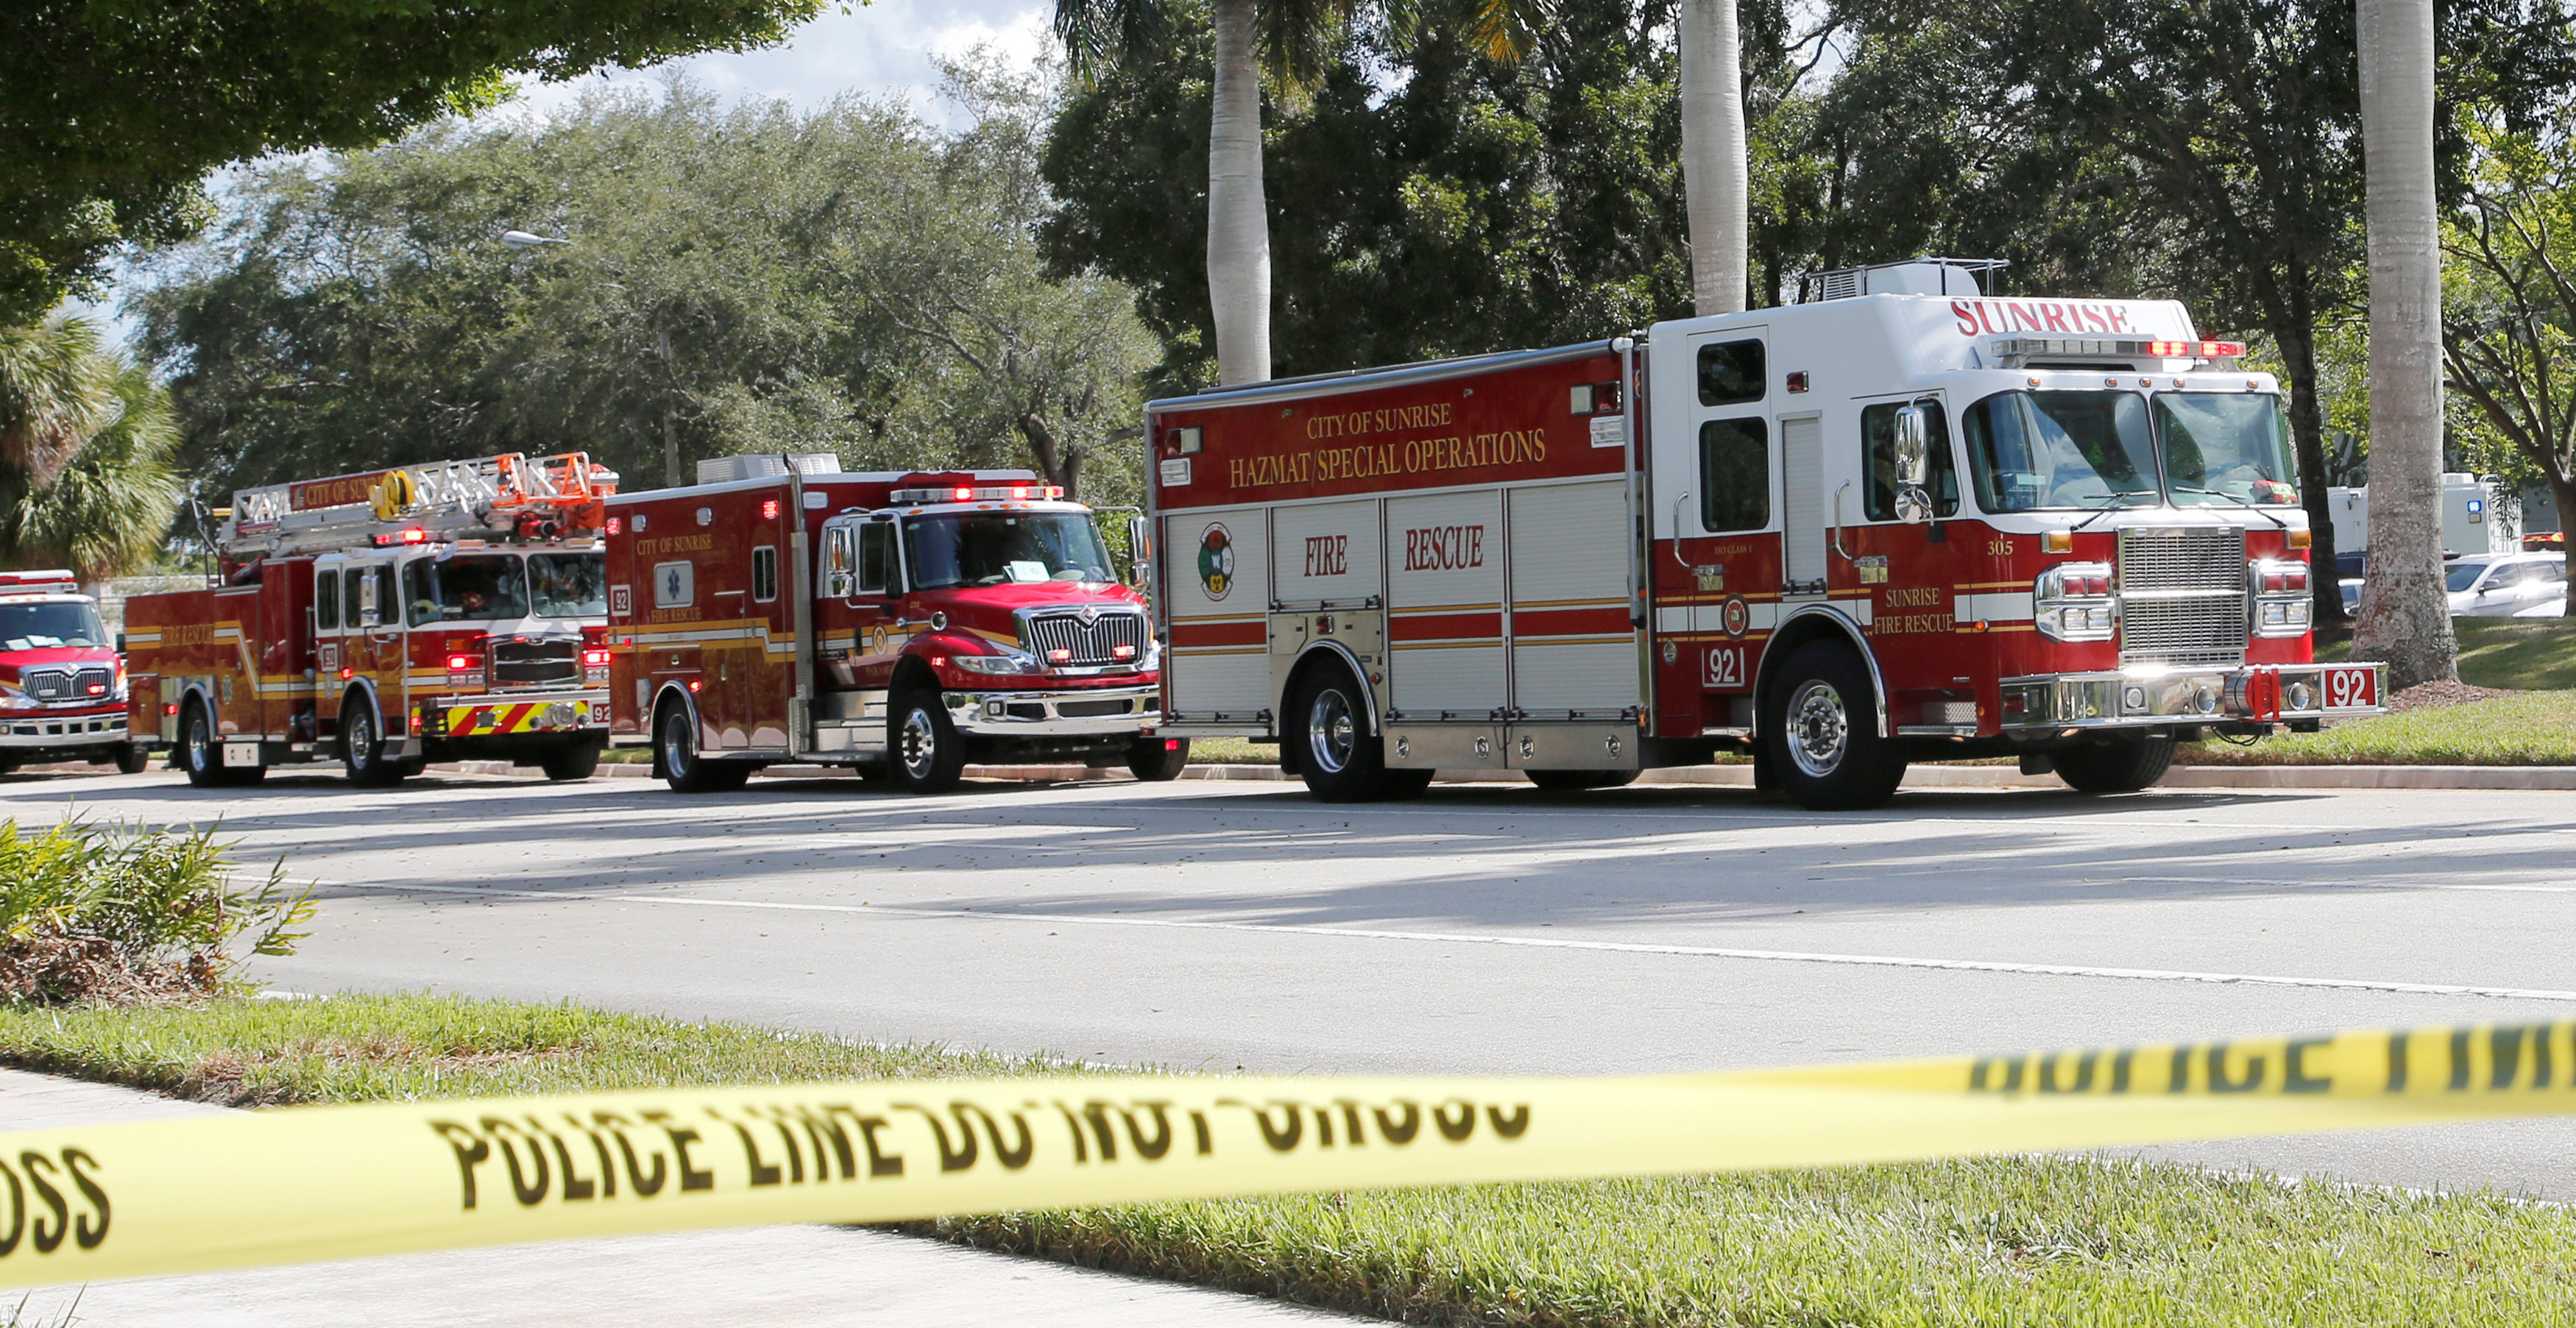 Los equipos de emergencia en Sunrise, Florida (REUTERS/Joe Skipper)